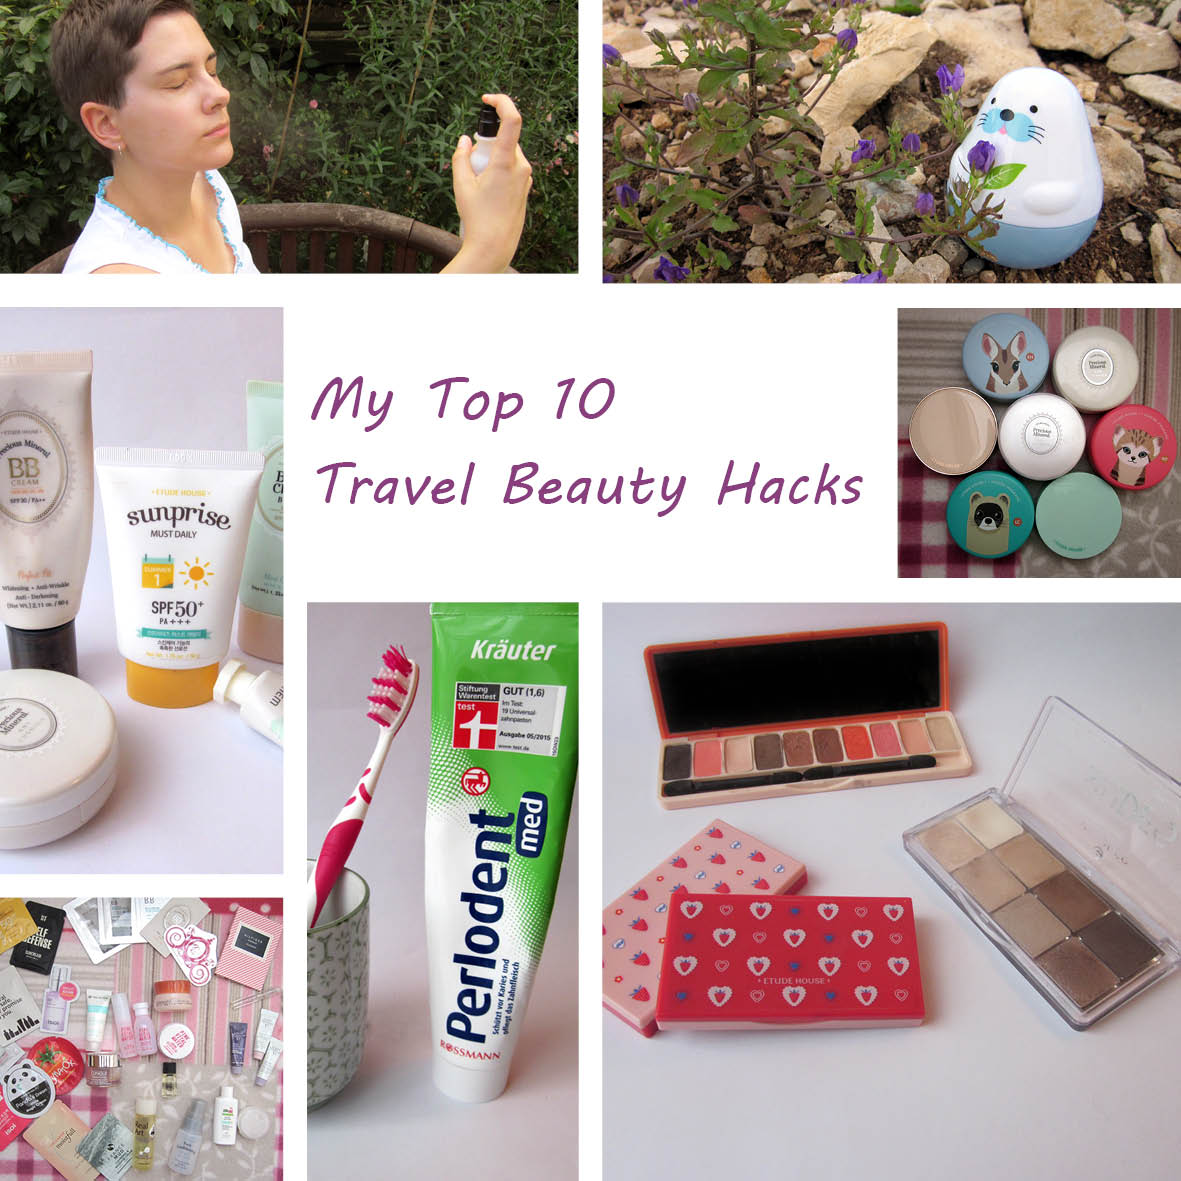 My Top 10 Beauty Travel Hacks